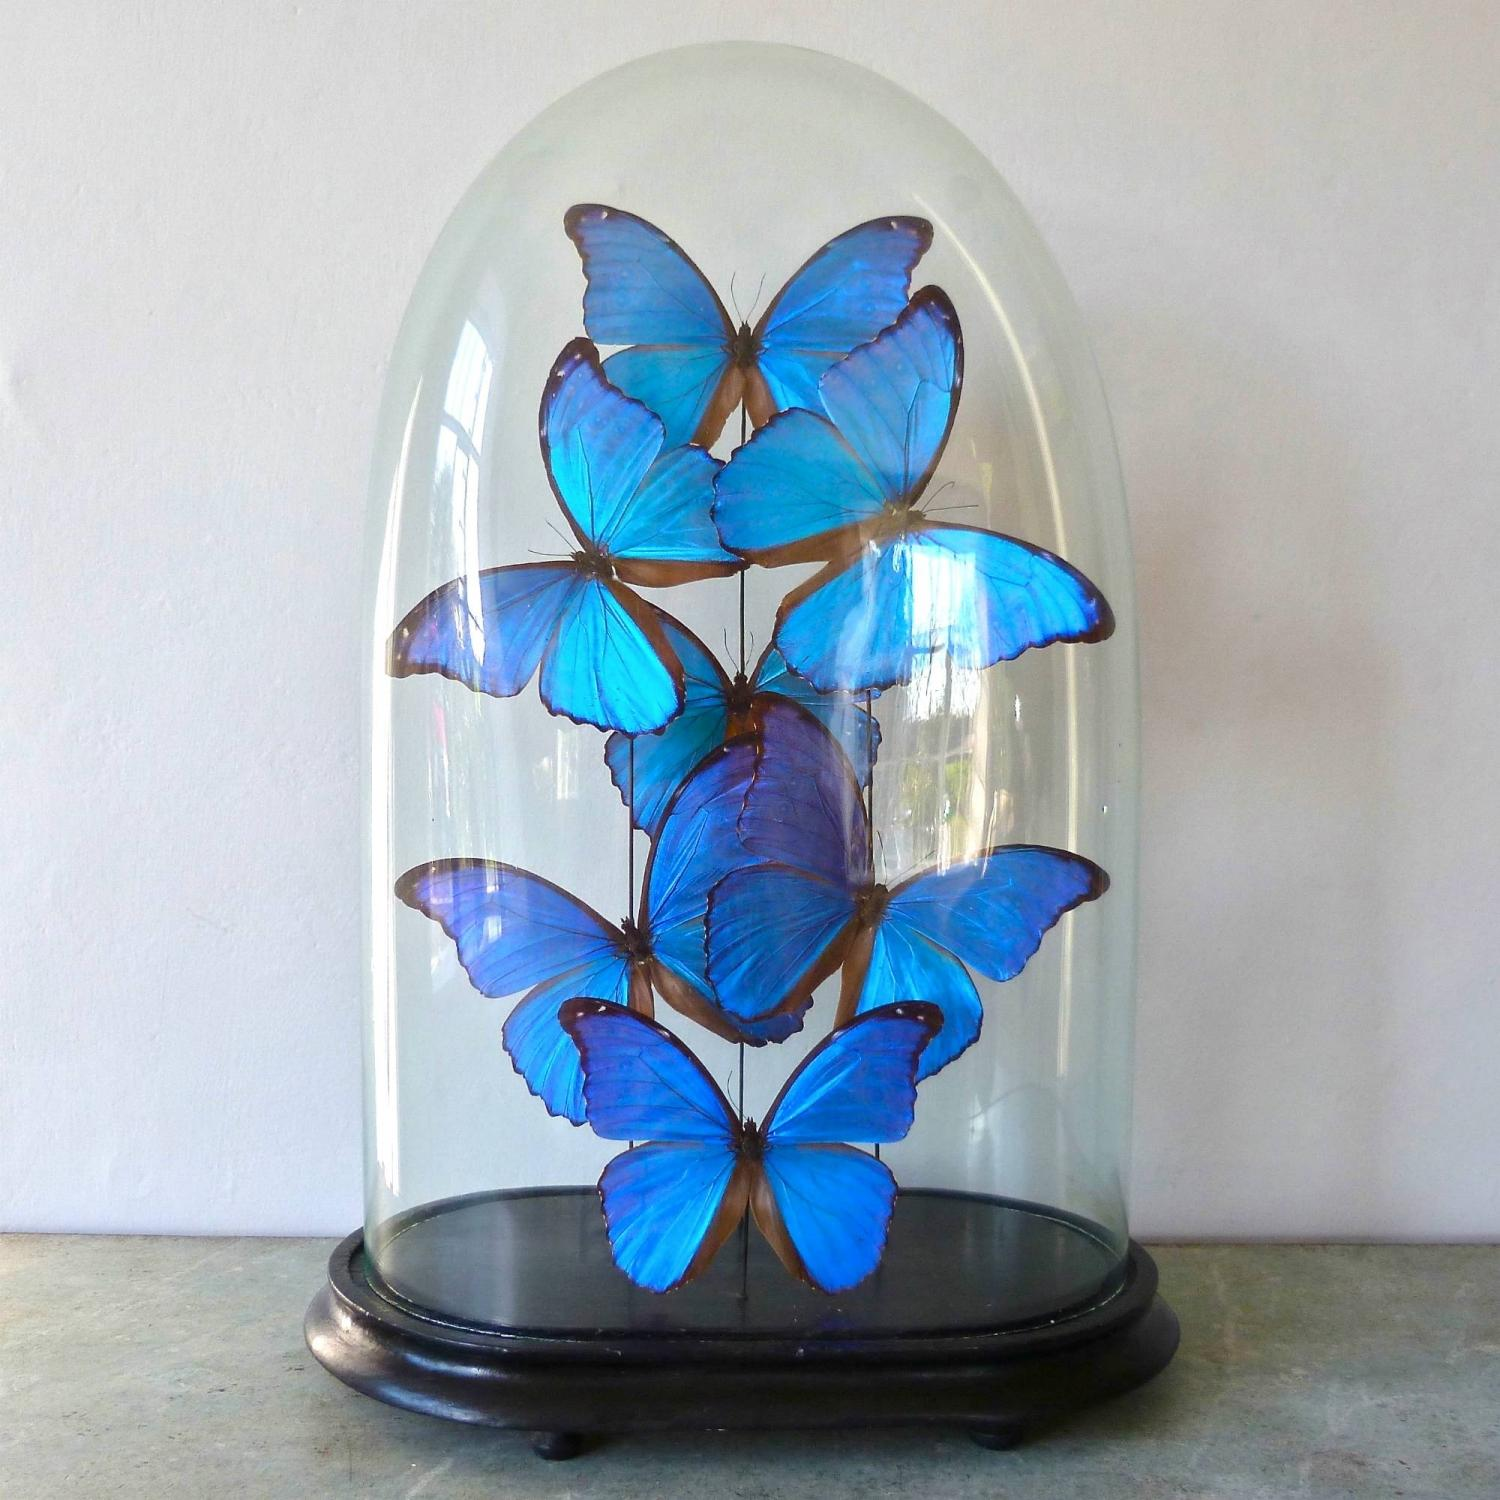 VICTORIAN DOME WITH STUNNING BLUE MORPHUS BUTTERFLIES